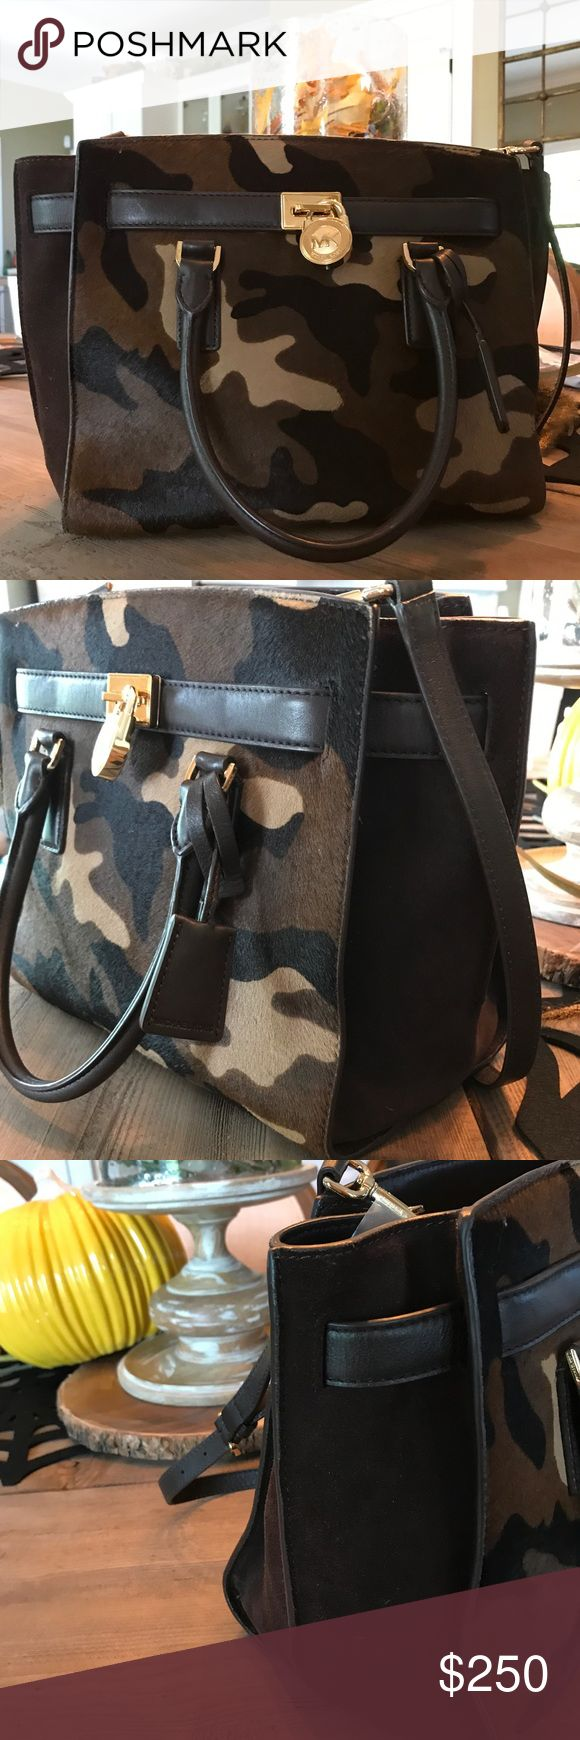 Michael Kors Camo Calf Hair Hamilton Bag / Purse Michael Kors Camo Calf Hair Hamilton Bag. Originally $395! Calf hair camo front with chocolate brown suede sides and chocolate leather for straps, back and bottom. Zip closure. Inside four pockets and one zip pocket. Key hook and detachable shoulder strap included. Slight discoloration on bottom. But otherwise Looks like new! Michael Kors Bags